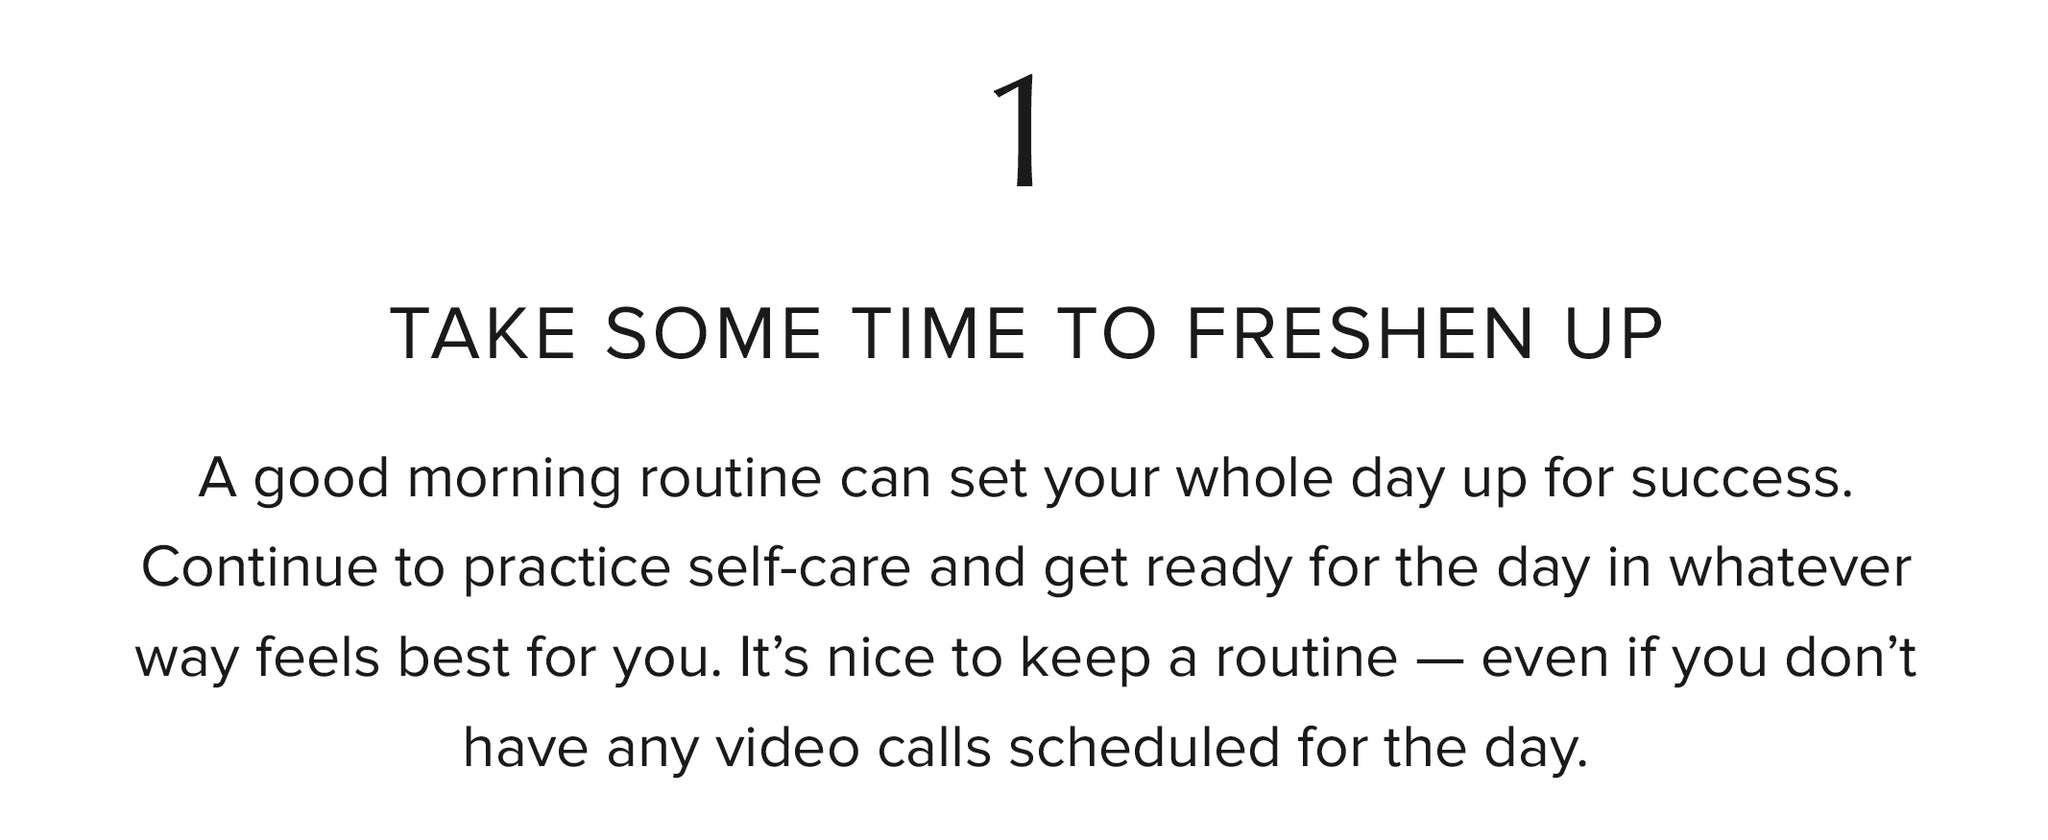 1. Take some time to freshen up